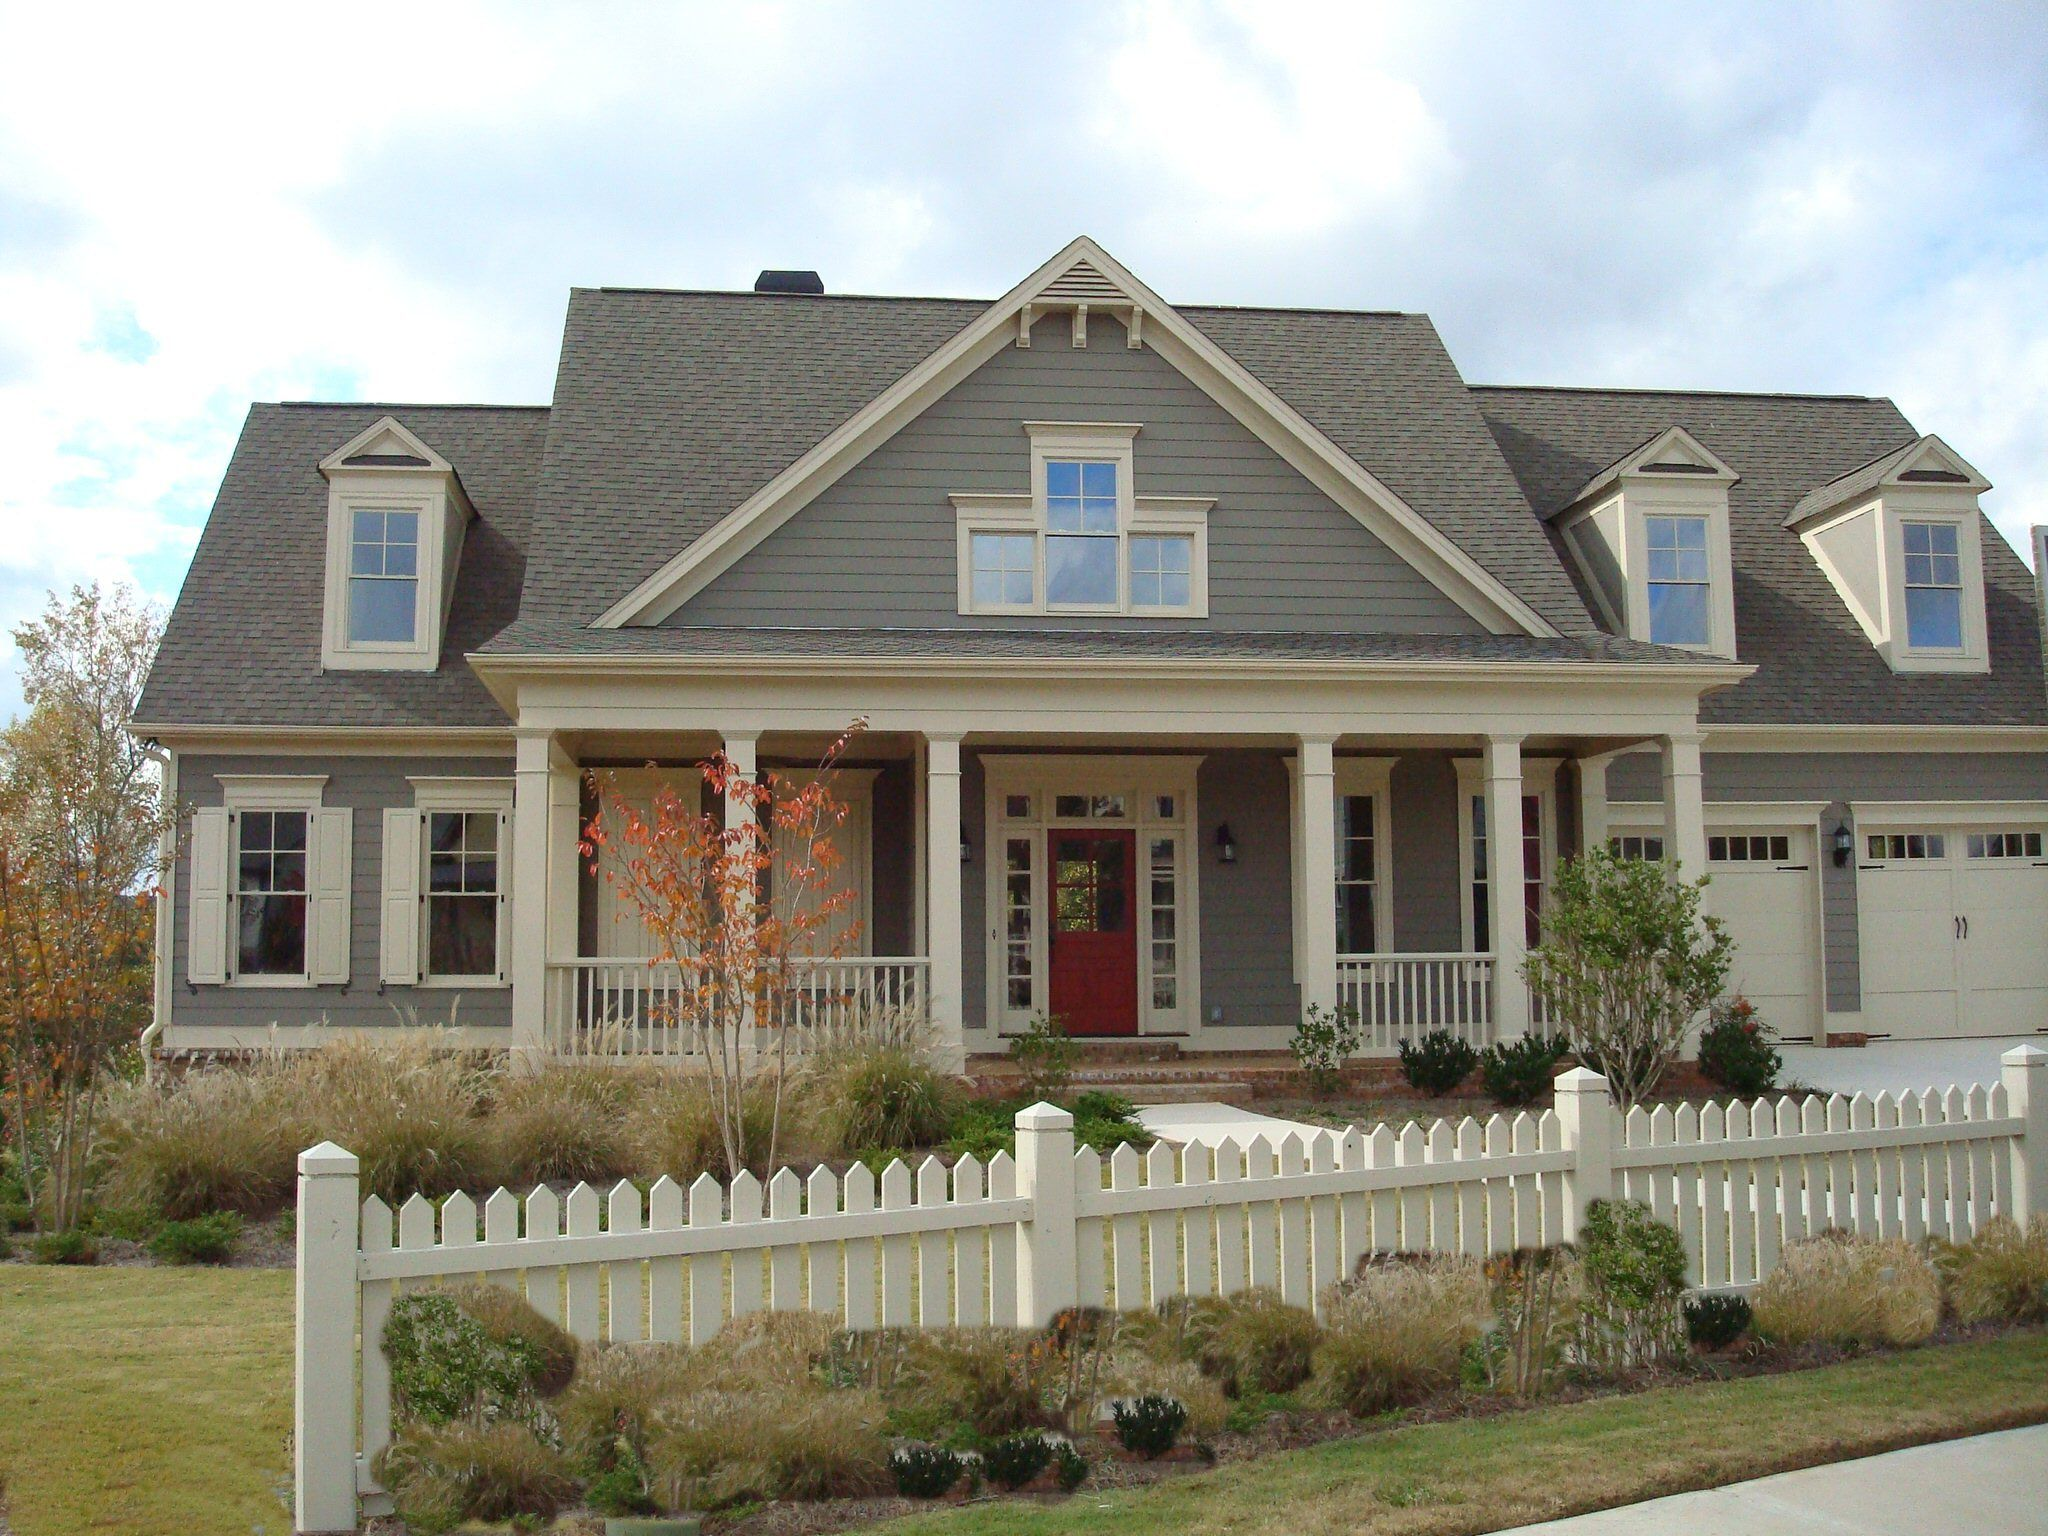 Superb 26 Best Ideas About Exterior Paint Colors On Pinterest Exterior Largest Home Design Picture Inspirations Pitcheantrous